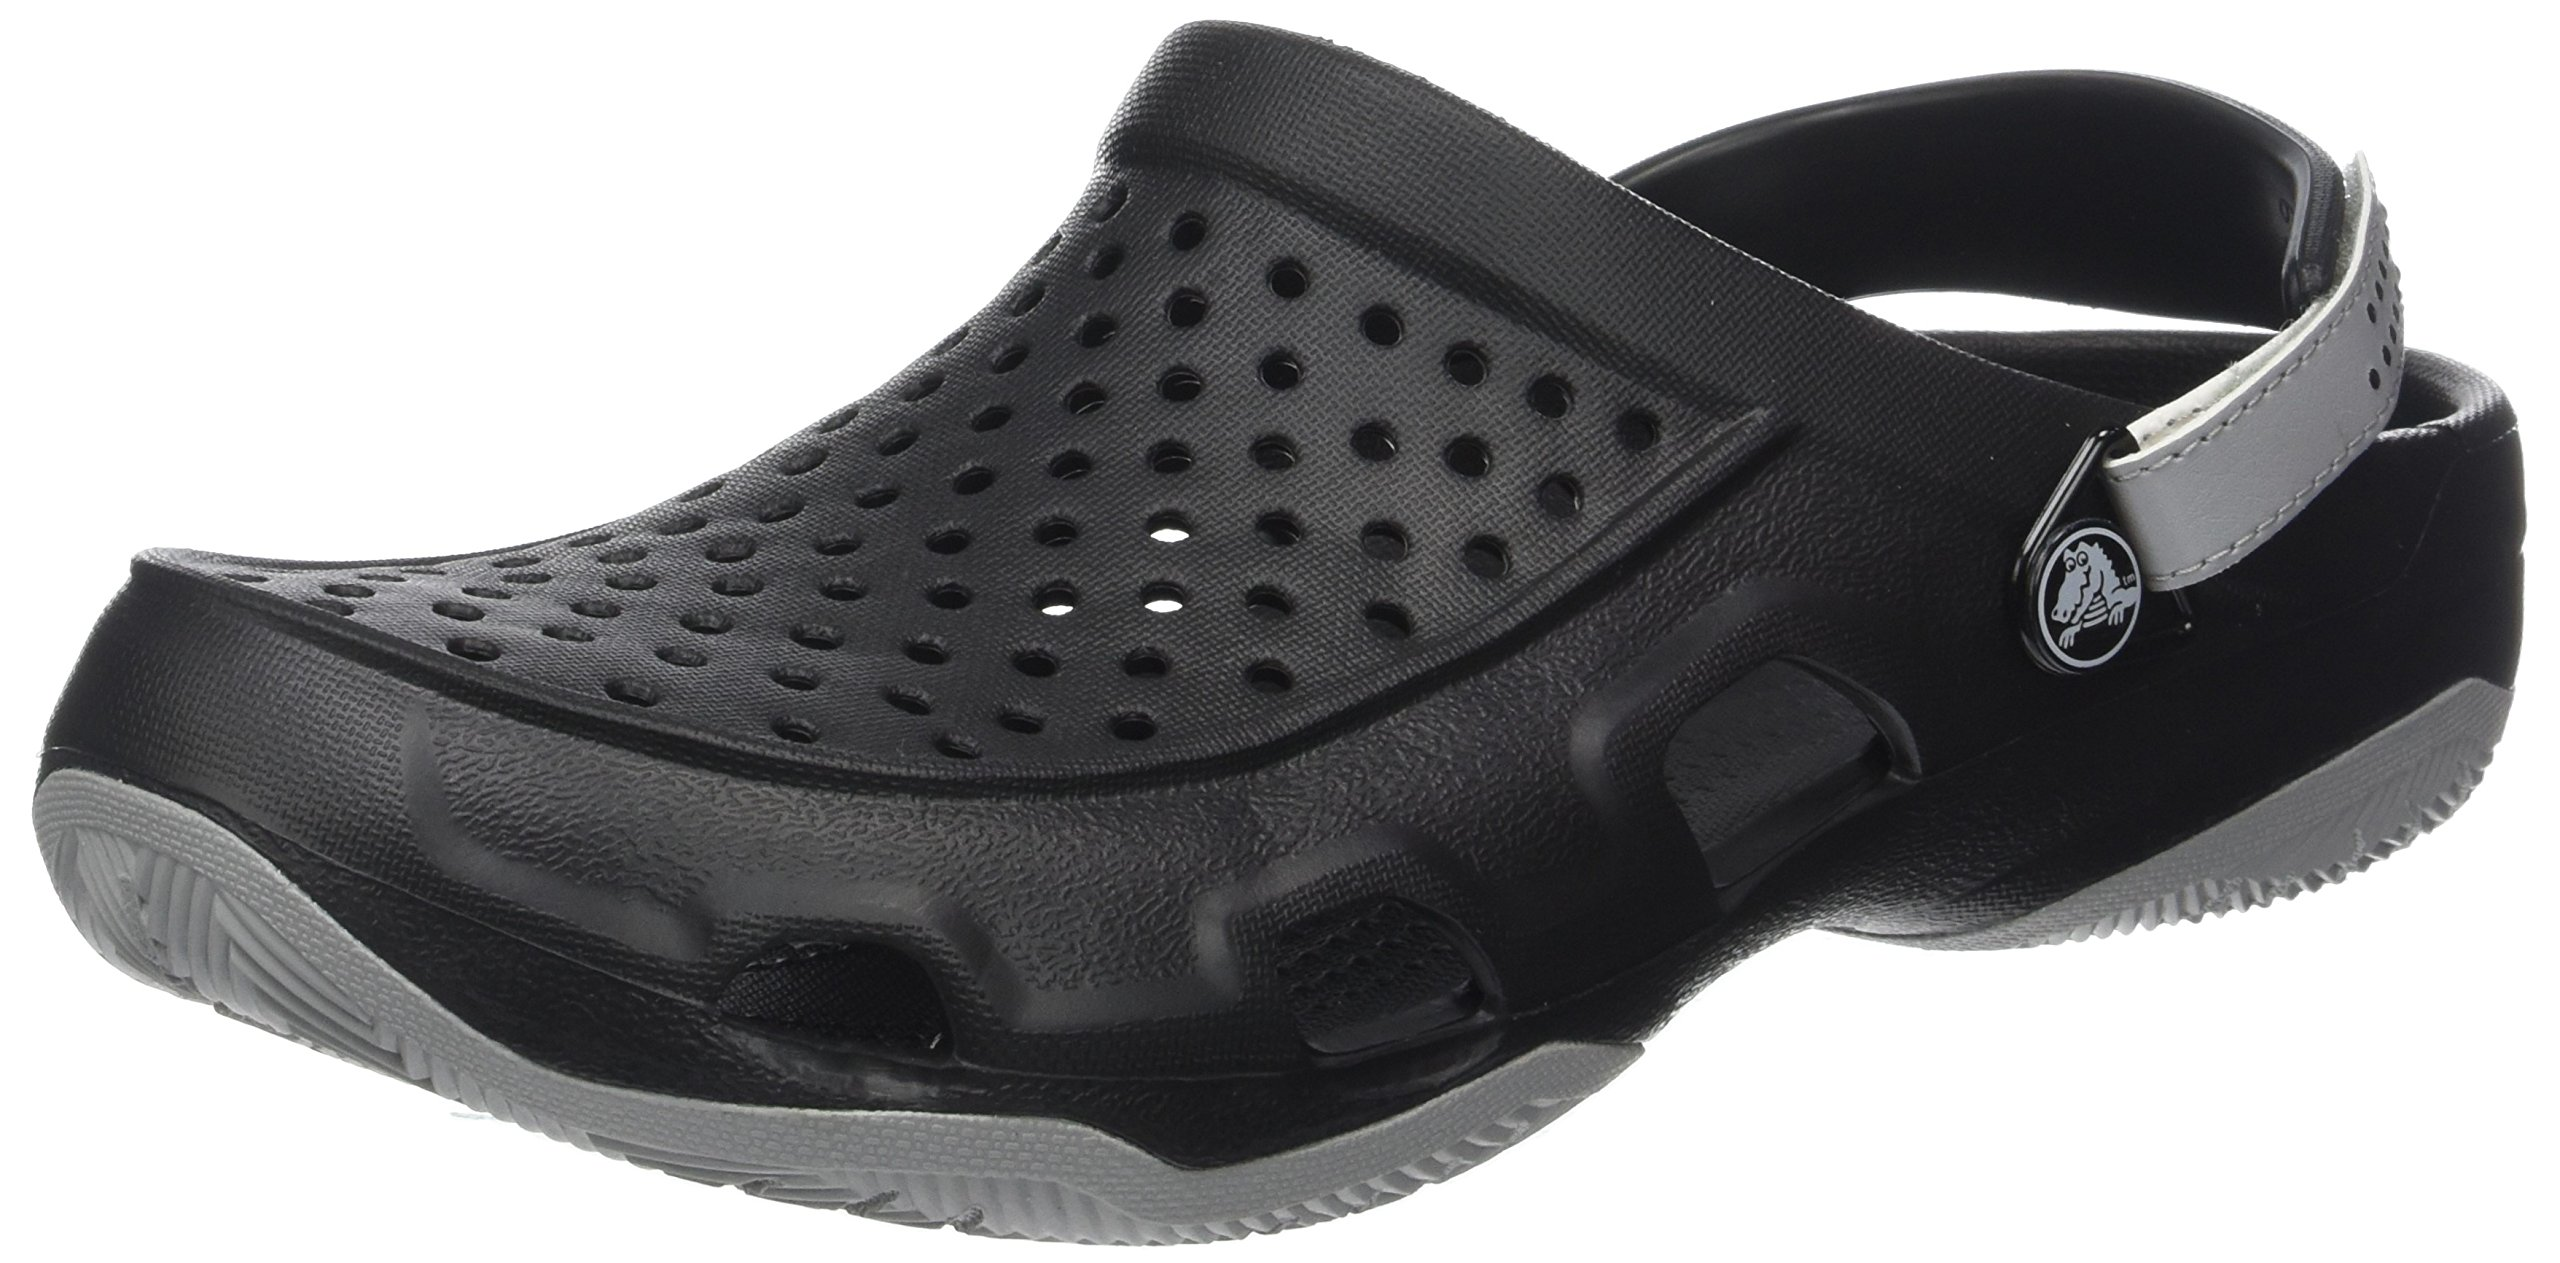 fd260c8d2 Get Quotations · Crocs Men s Swiftwater Deck Clog